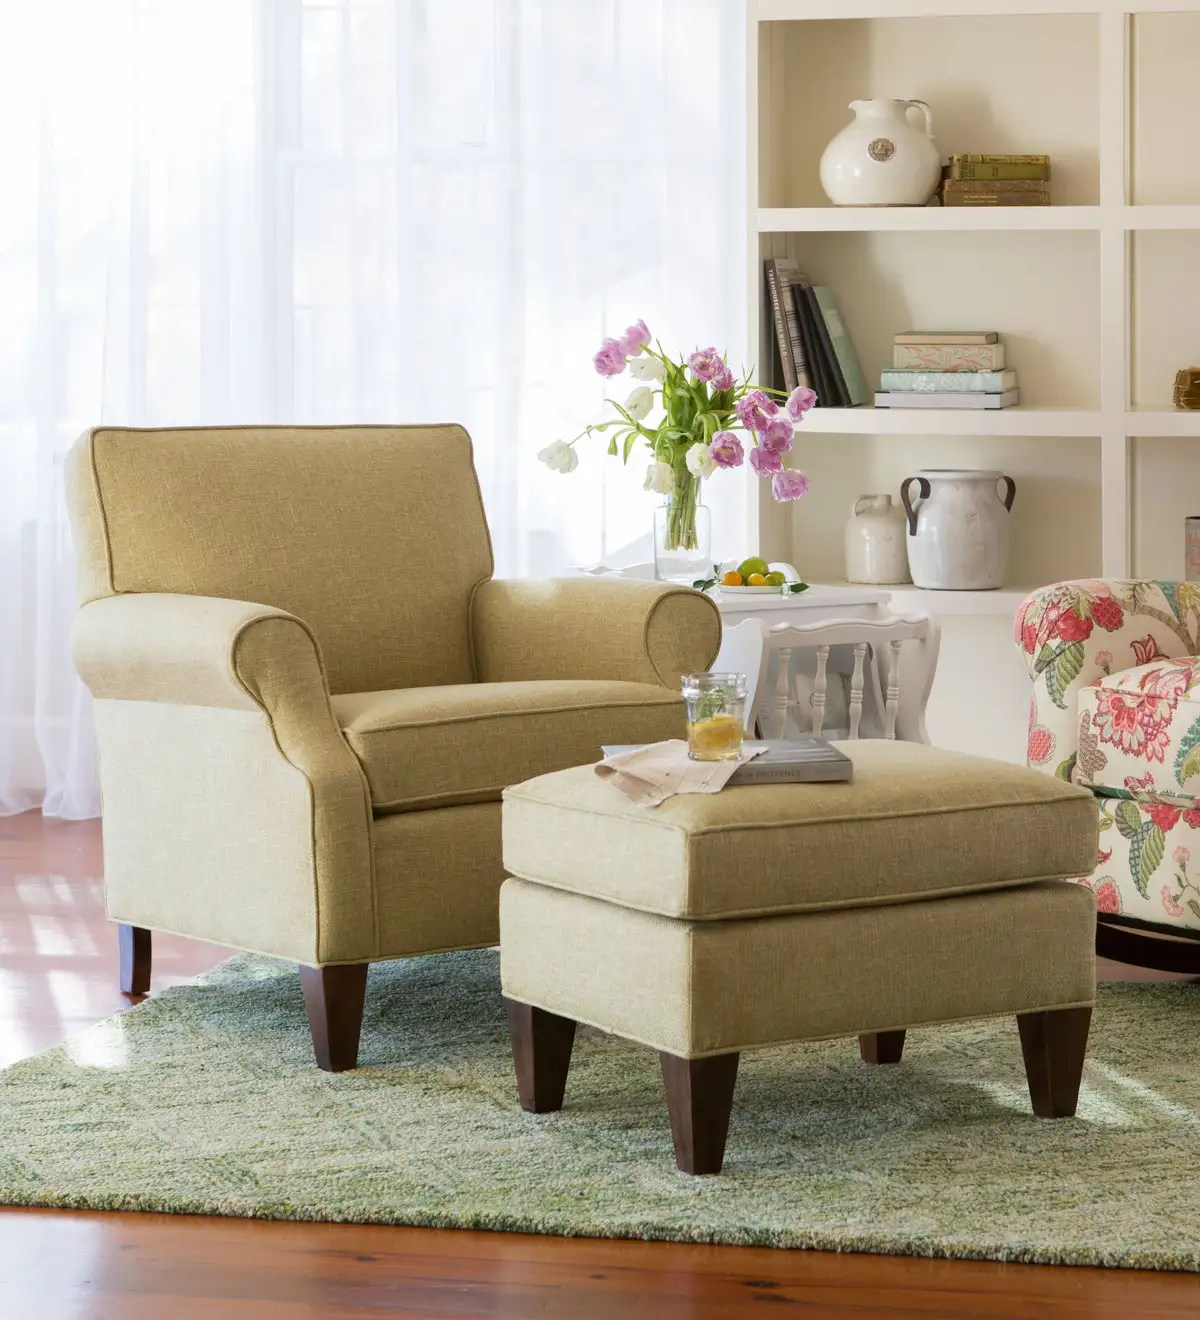 Upholstered Club Chair Usa Made Bedford Collection Upholstered Club Chair